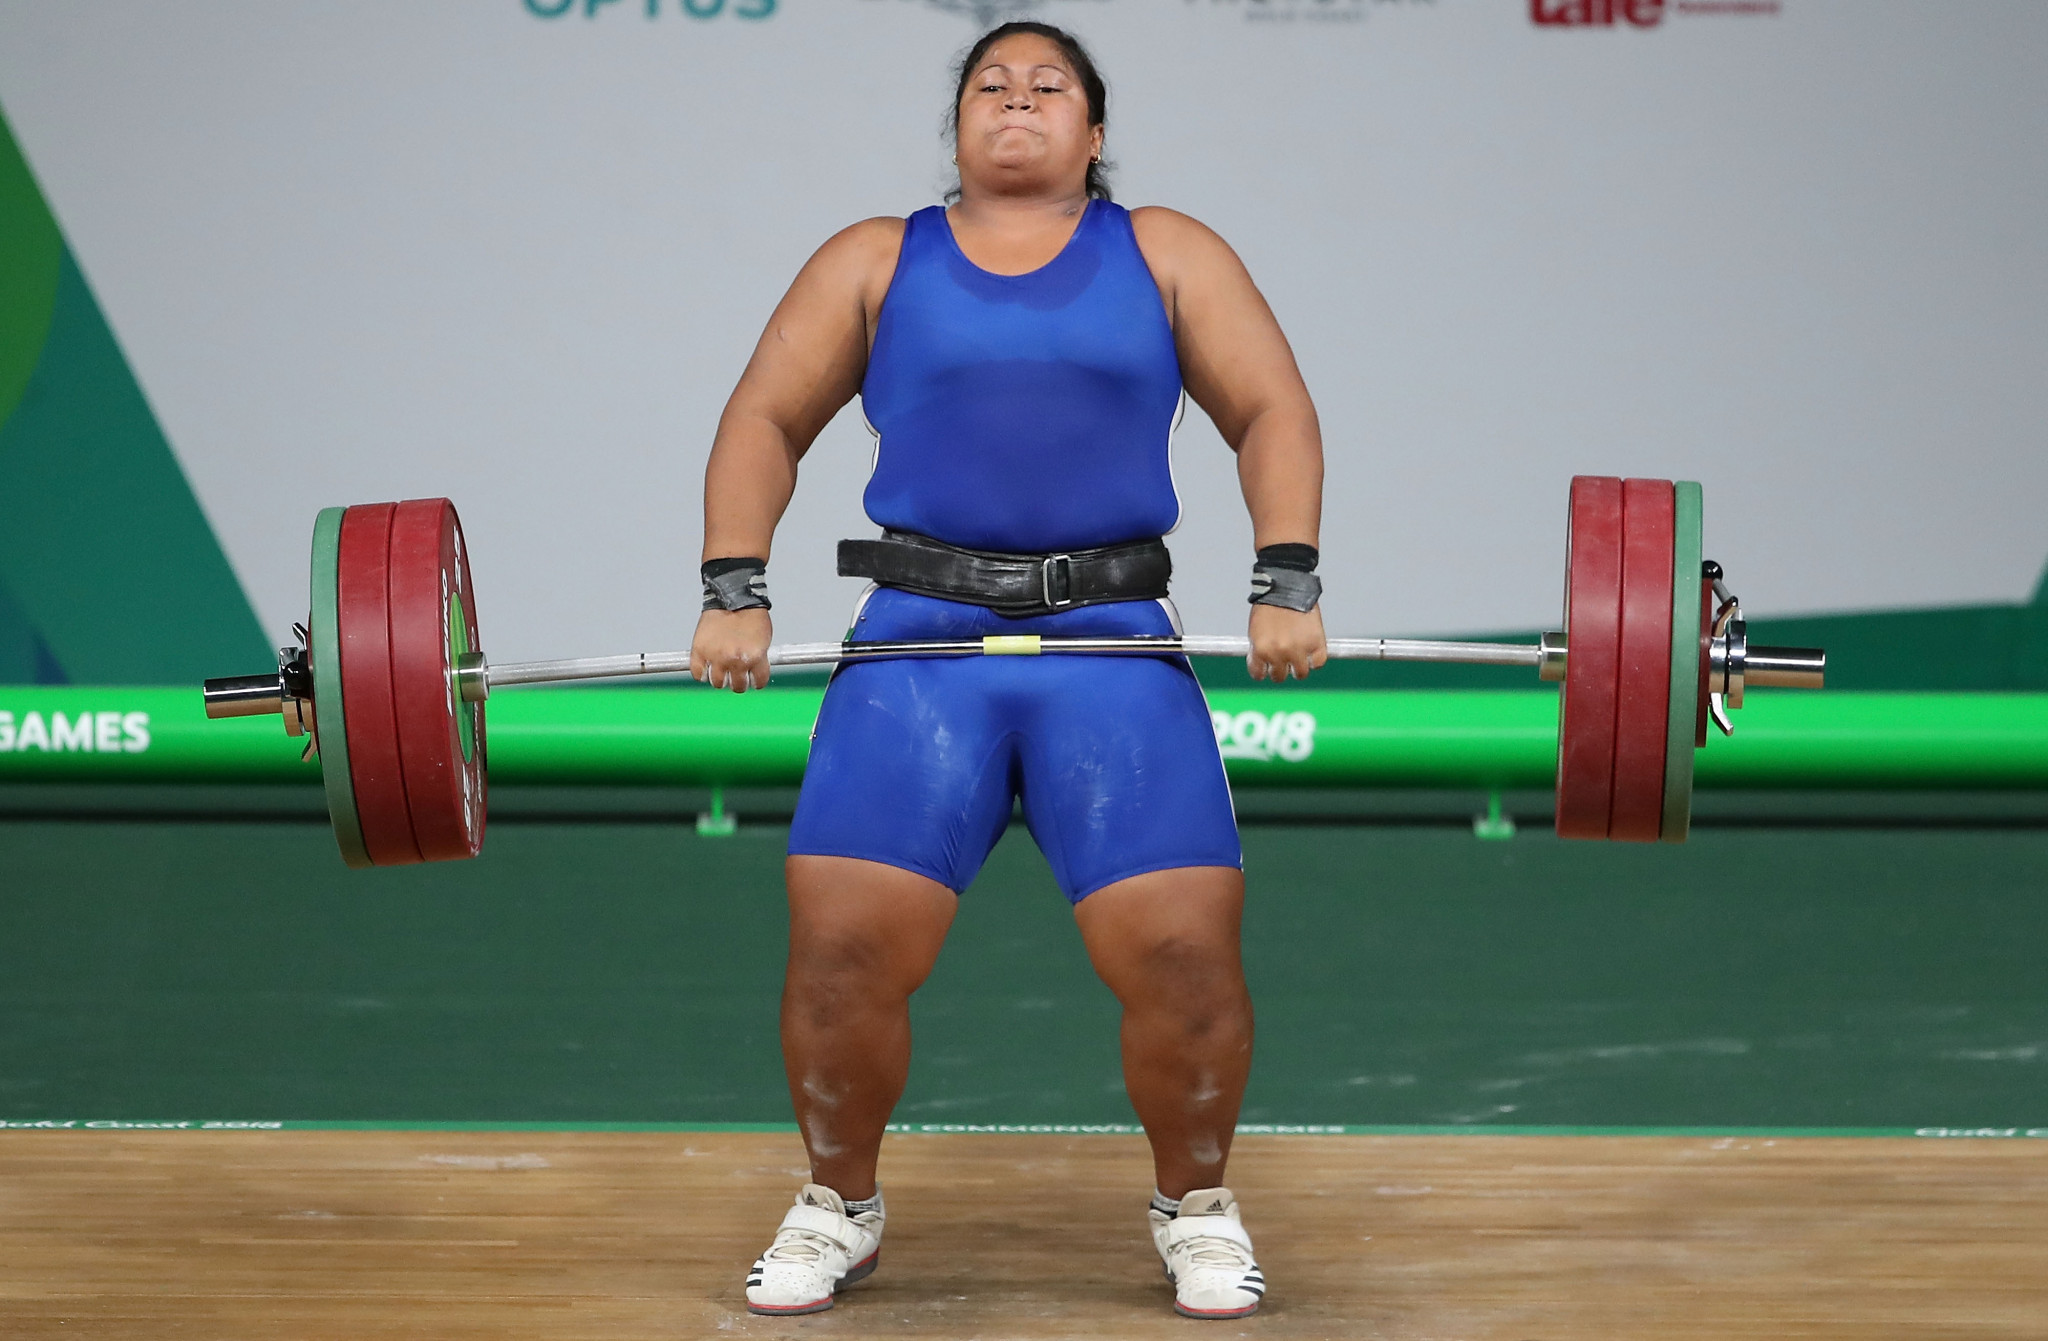 Samoa's Feagaiga Stowers was second at the 2017 Pacific Games, behind Laurel Hubbard ©Getty Images